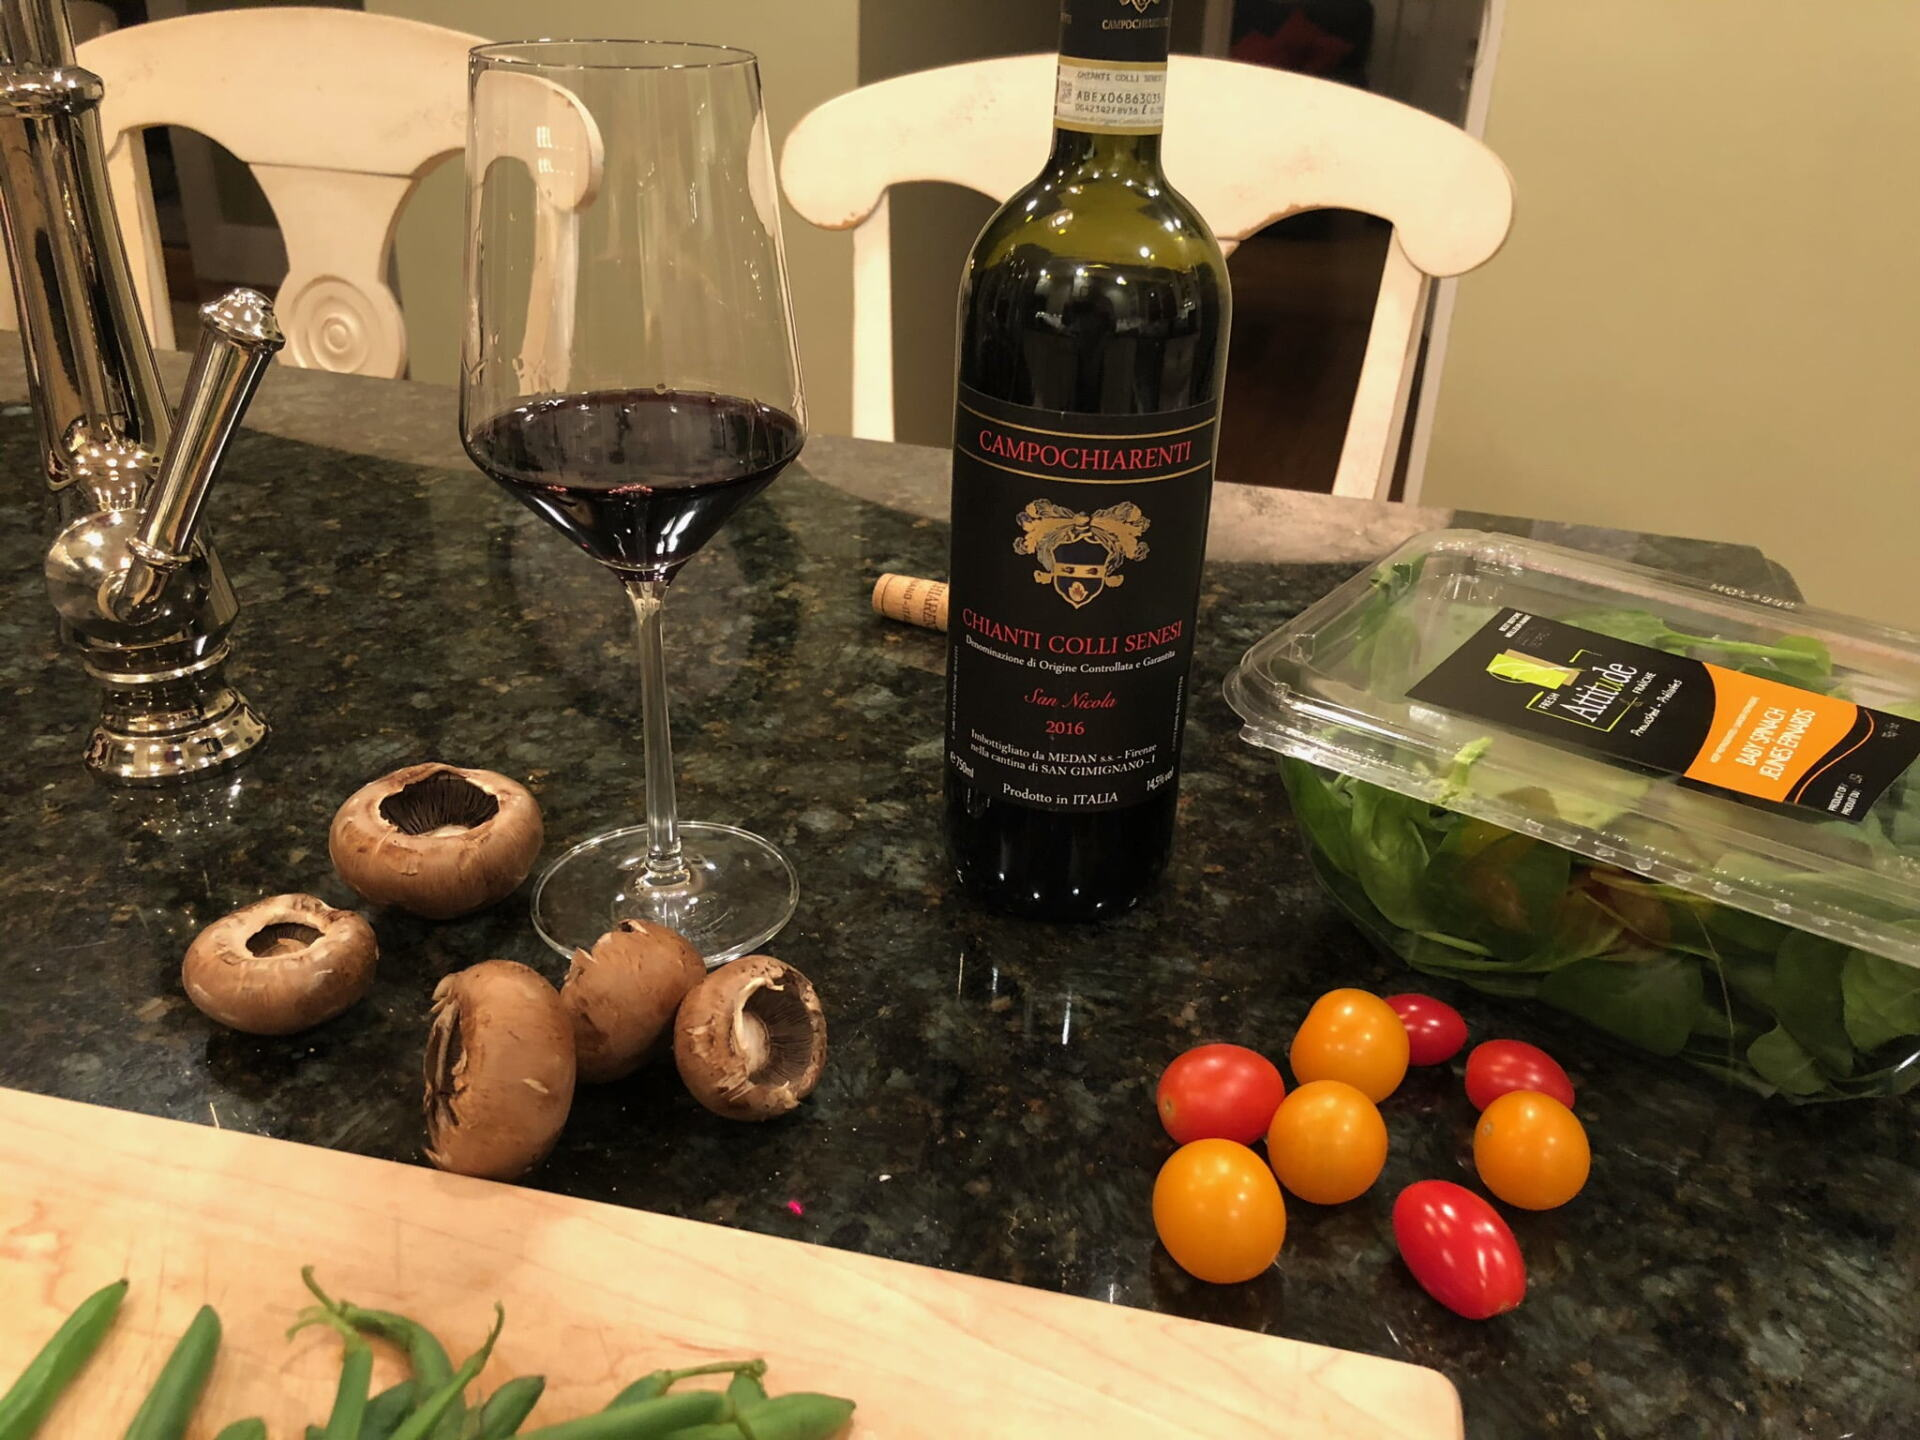 Wine, ingredients and cutting board